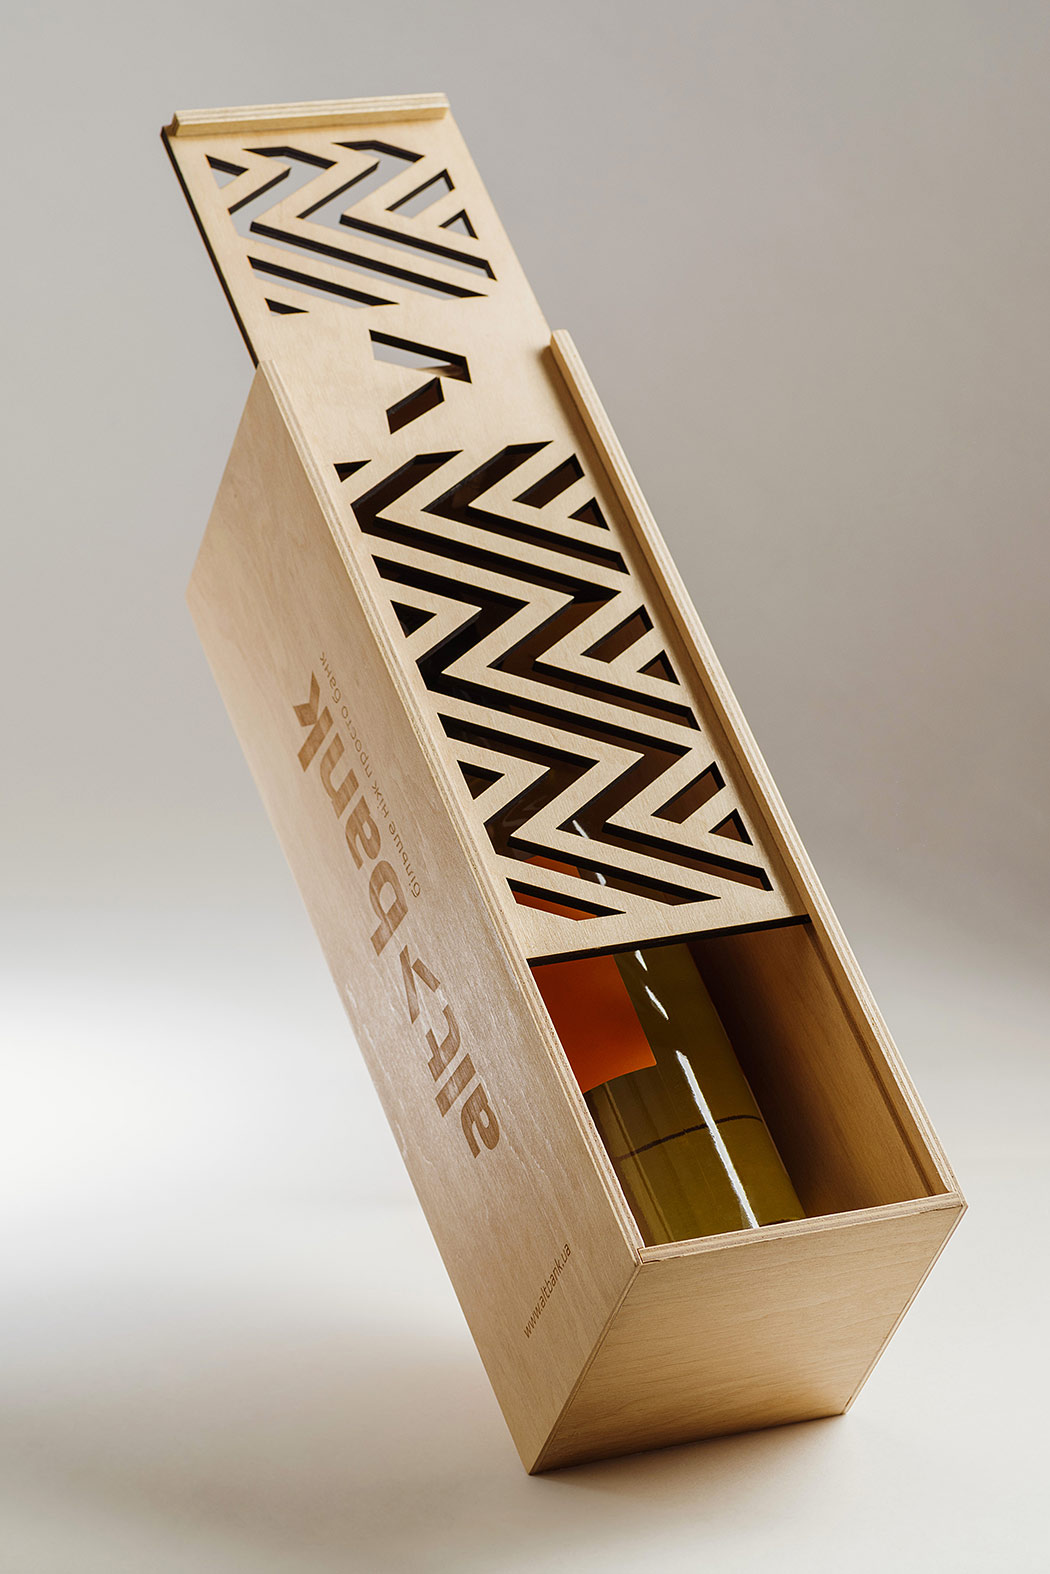 The plywood wine box with the Altbank logo. Gift packing.